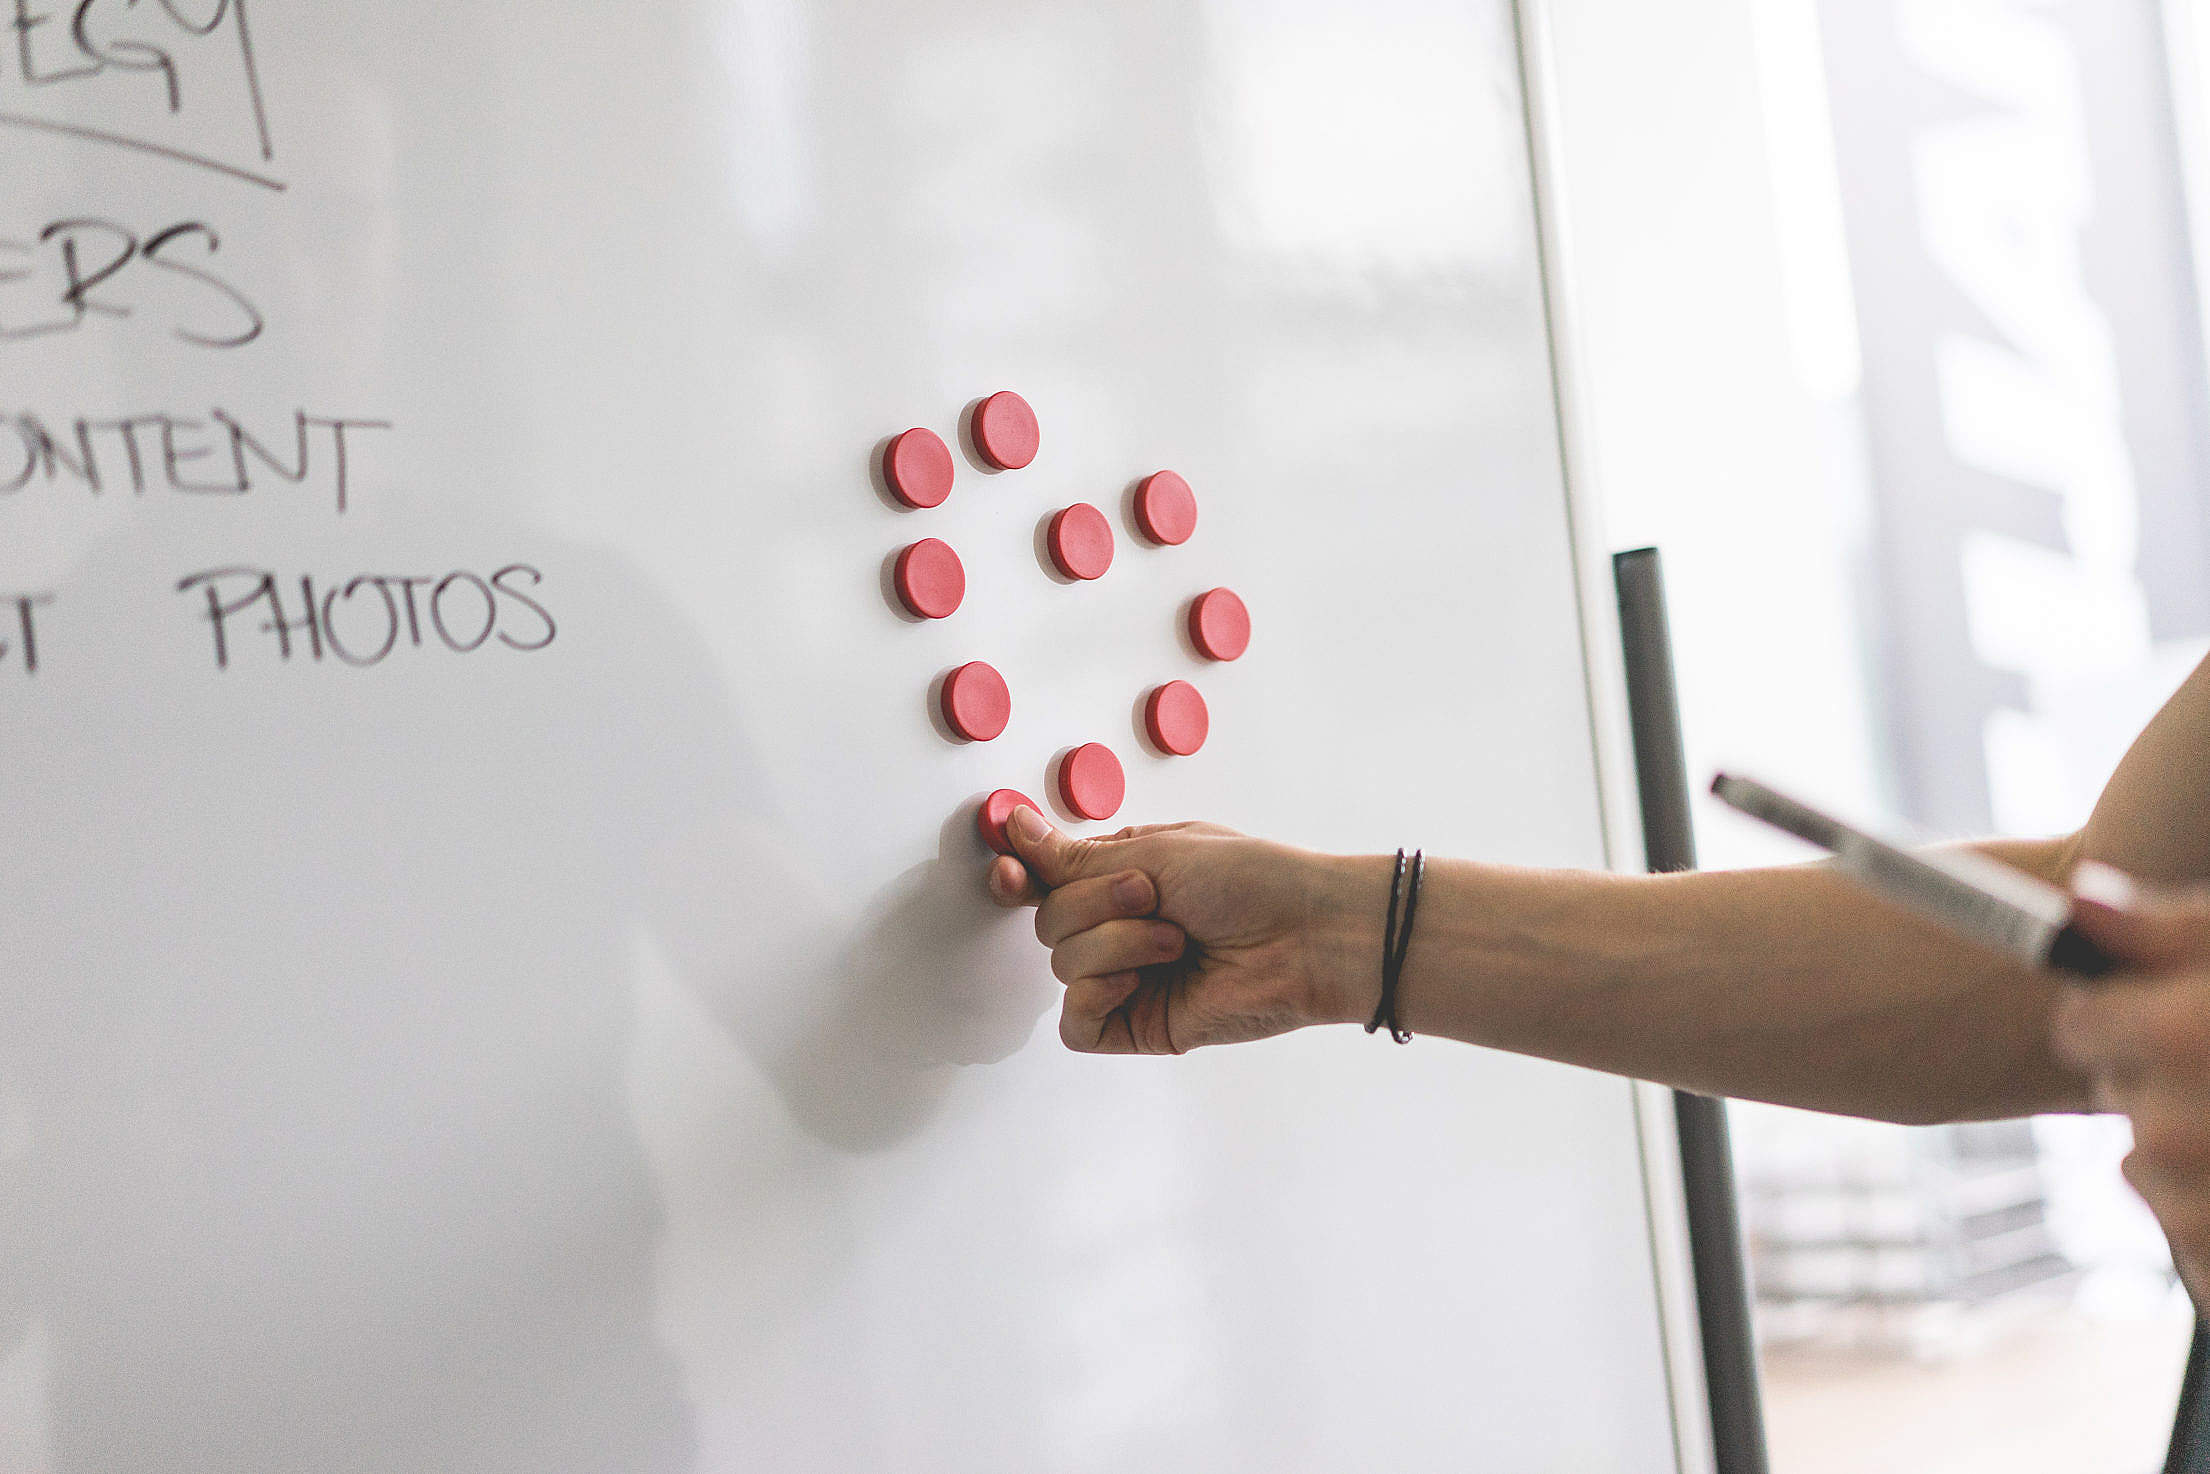 Heart with Whiteboard Magnets Free Stock Photo